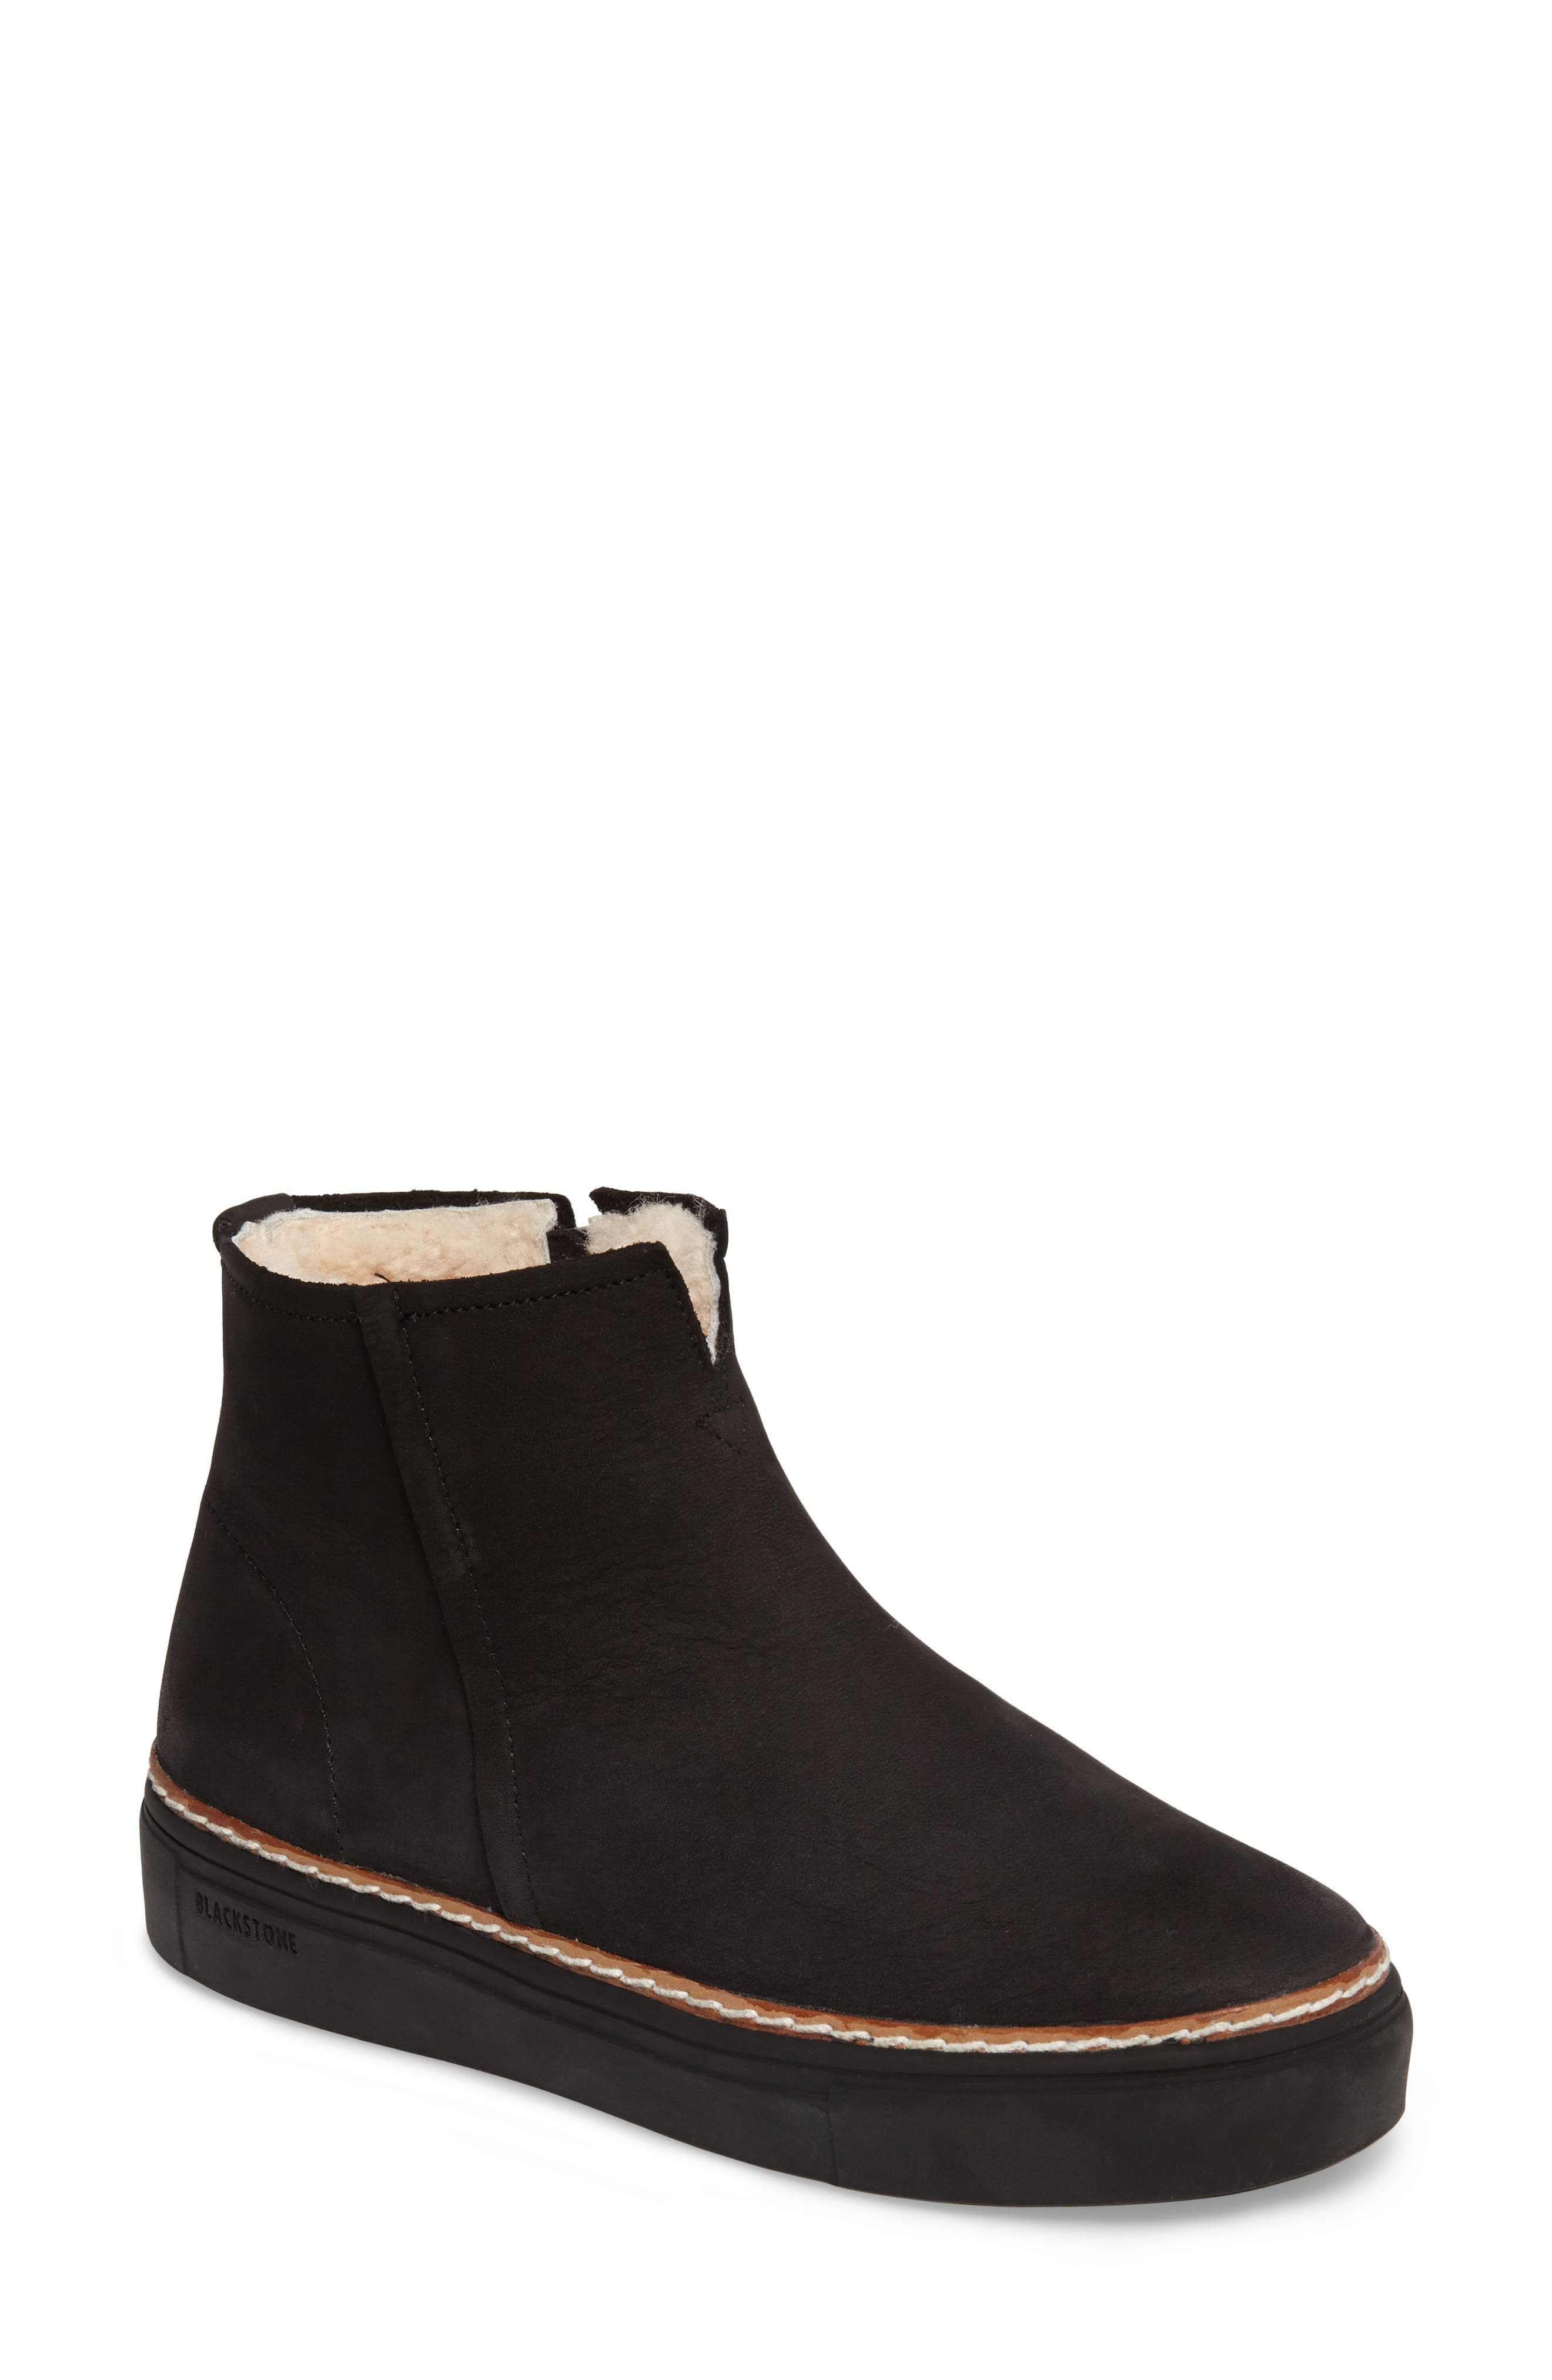 OL27 Genuine Shearling Lined Bootie,                             Main thumbnail 1, color,                             BLACK NUBUCK